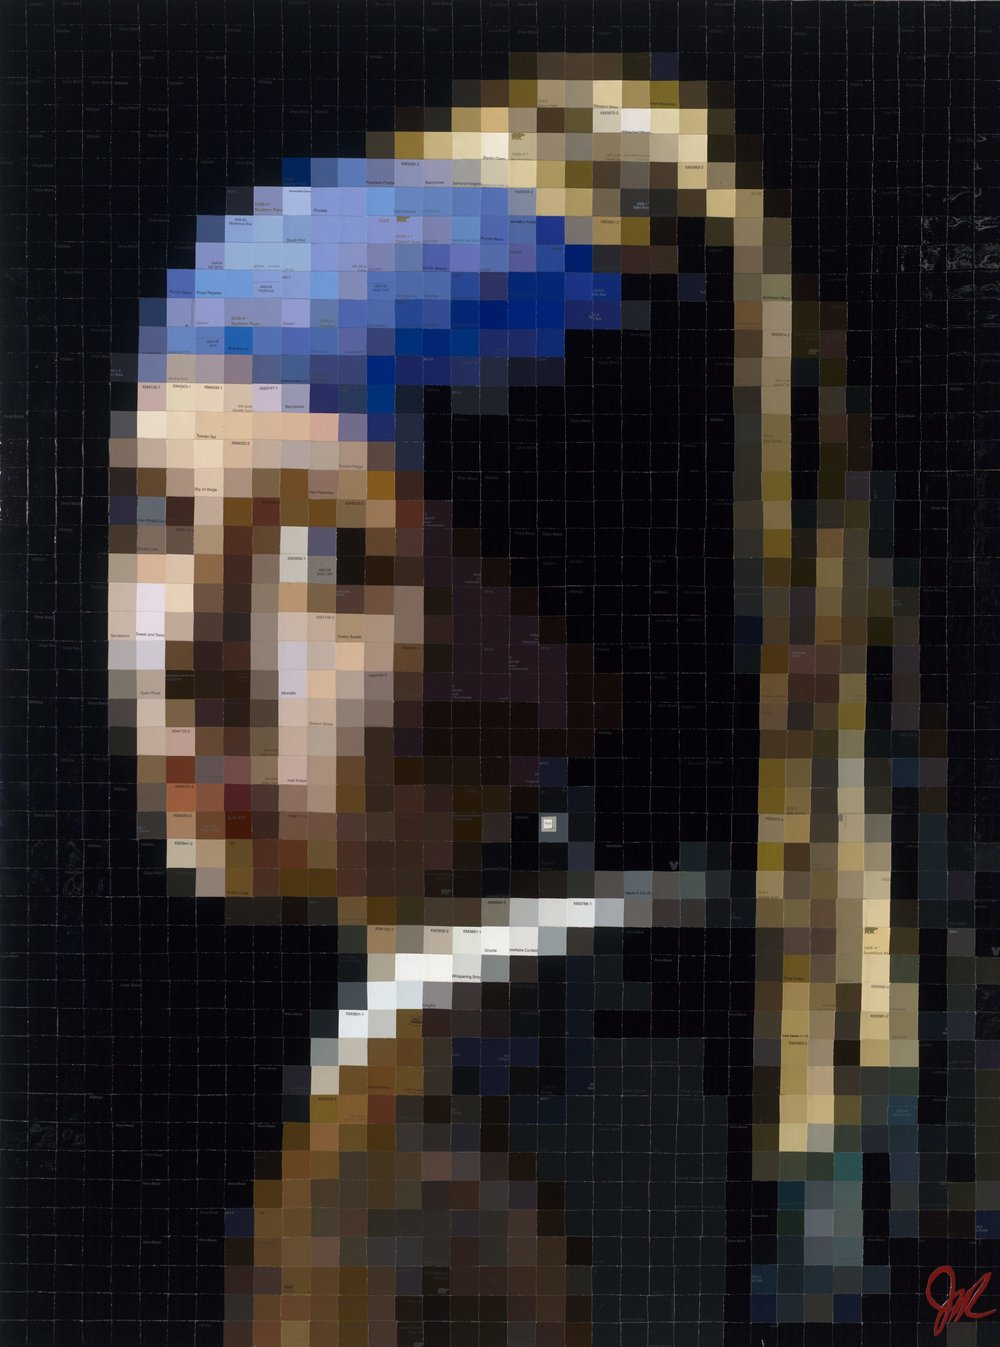 Girl with the Pearl Earring [Vermeer] • 48 X 36 • paint swatch (paper) collage on panel